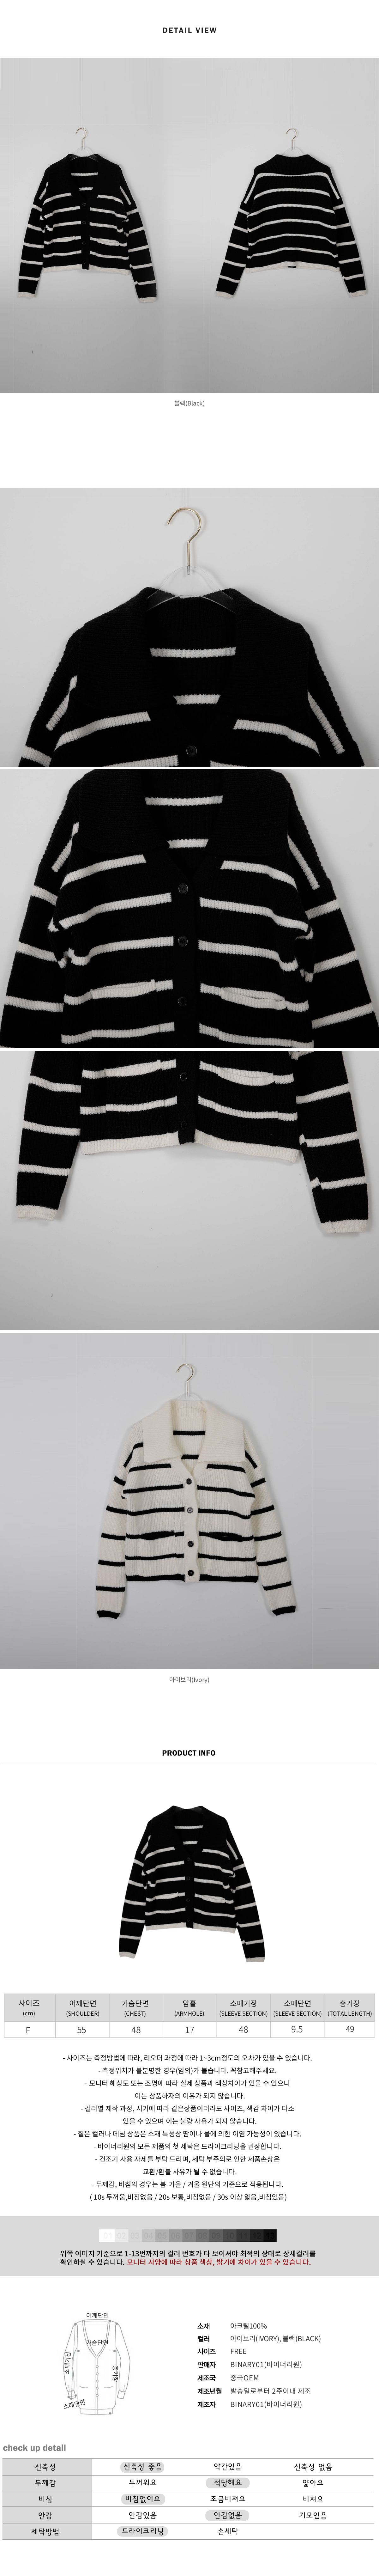 Striped Another Knitwear Cardigan